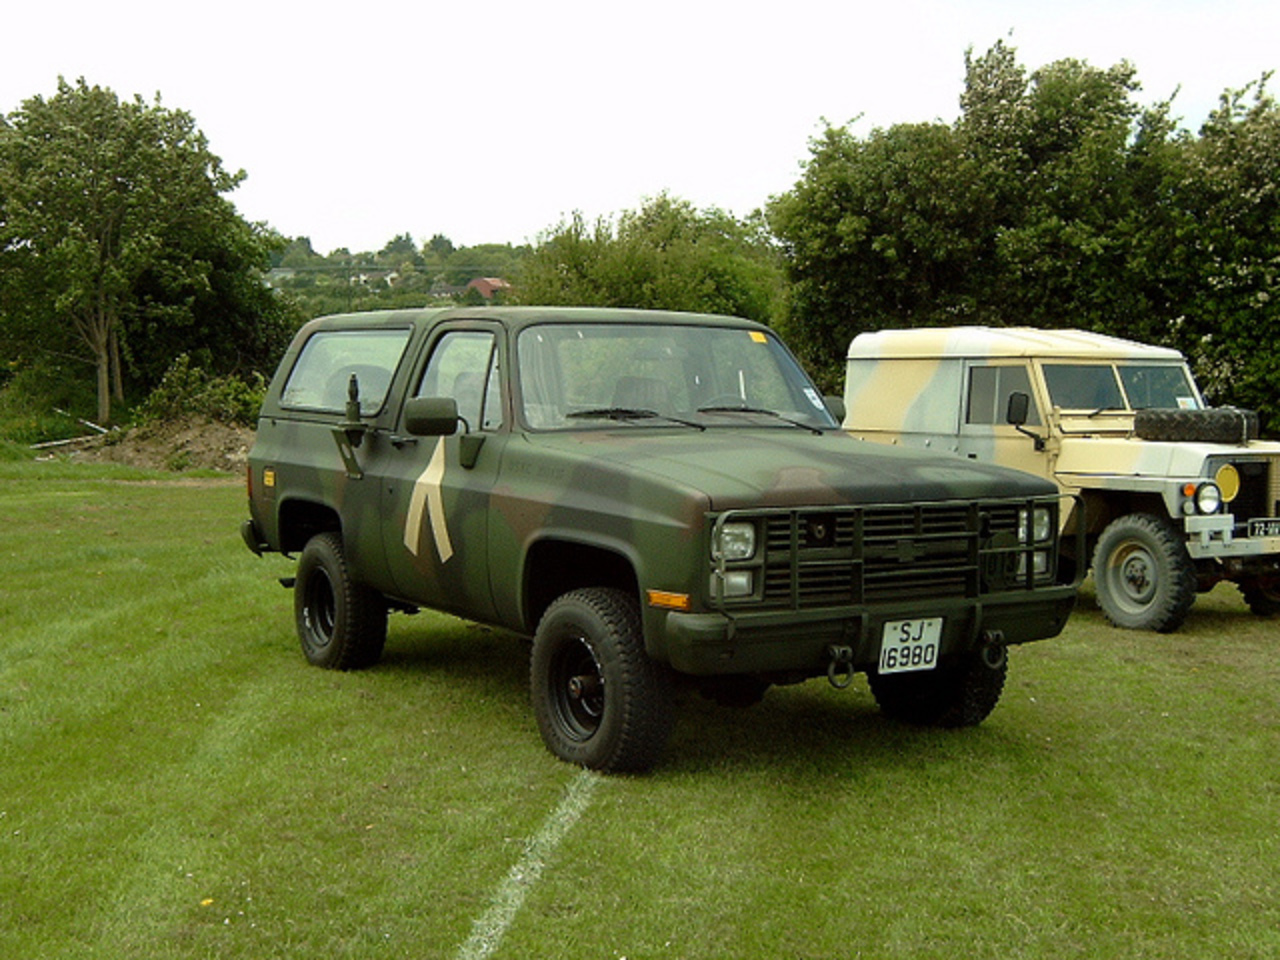 Chevrolet Suburban Army Vehicle | Flickr - Photo Sharing!